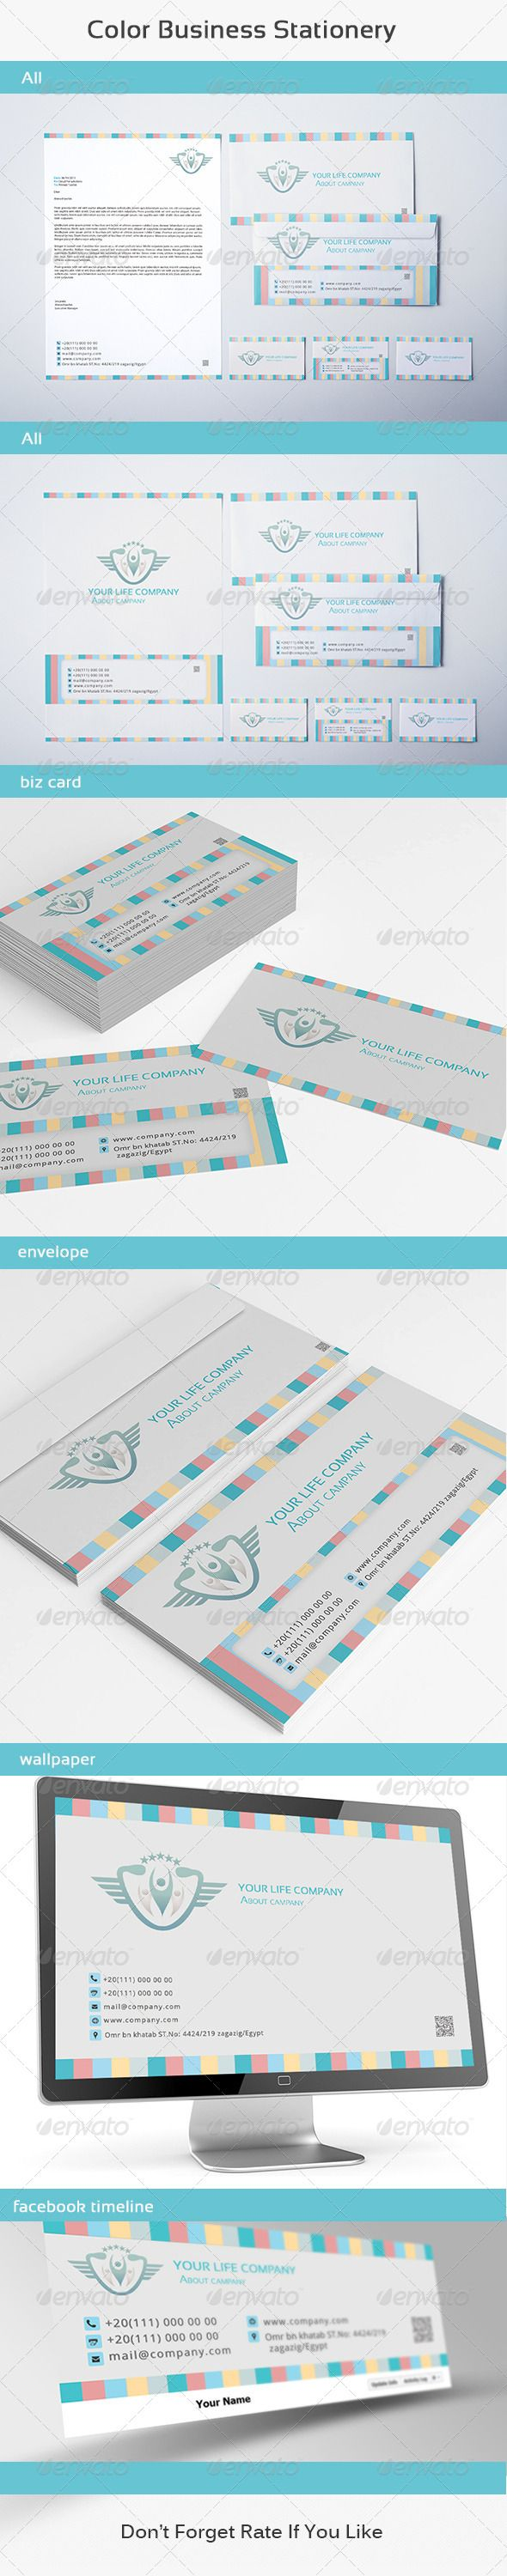 Color printing bu - Color Business Stationery Graphicriver Features Fully Editable Files Letterhead 210 297 Mm